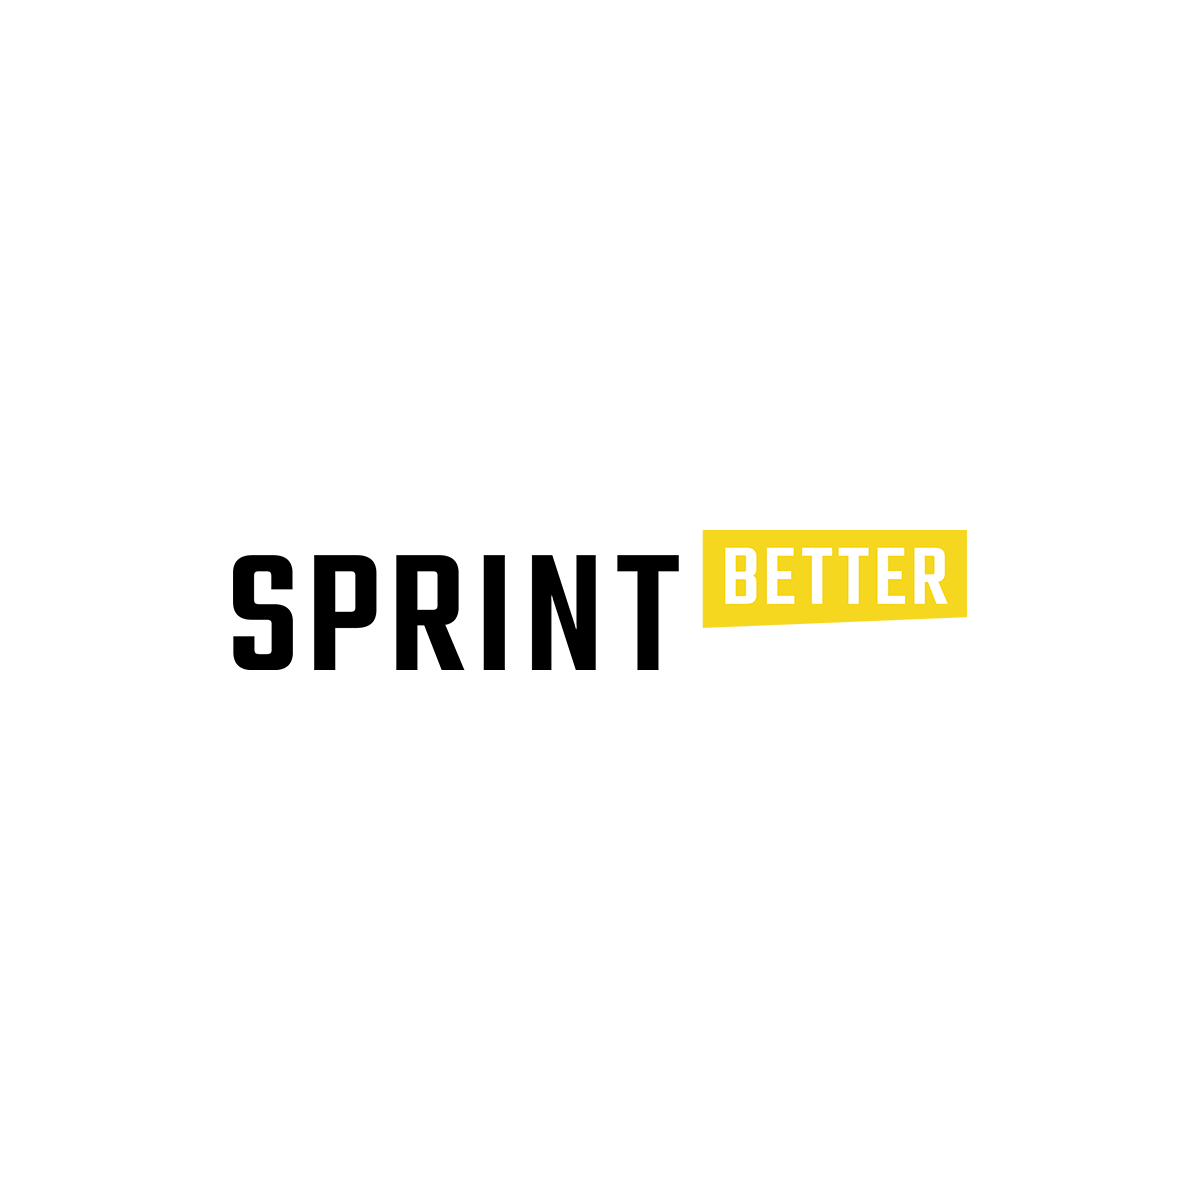 Logo Design Sprint Better